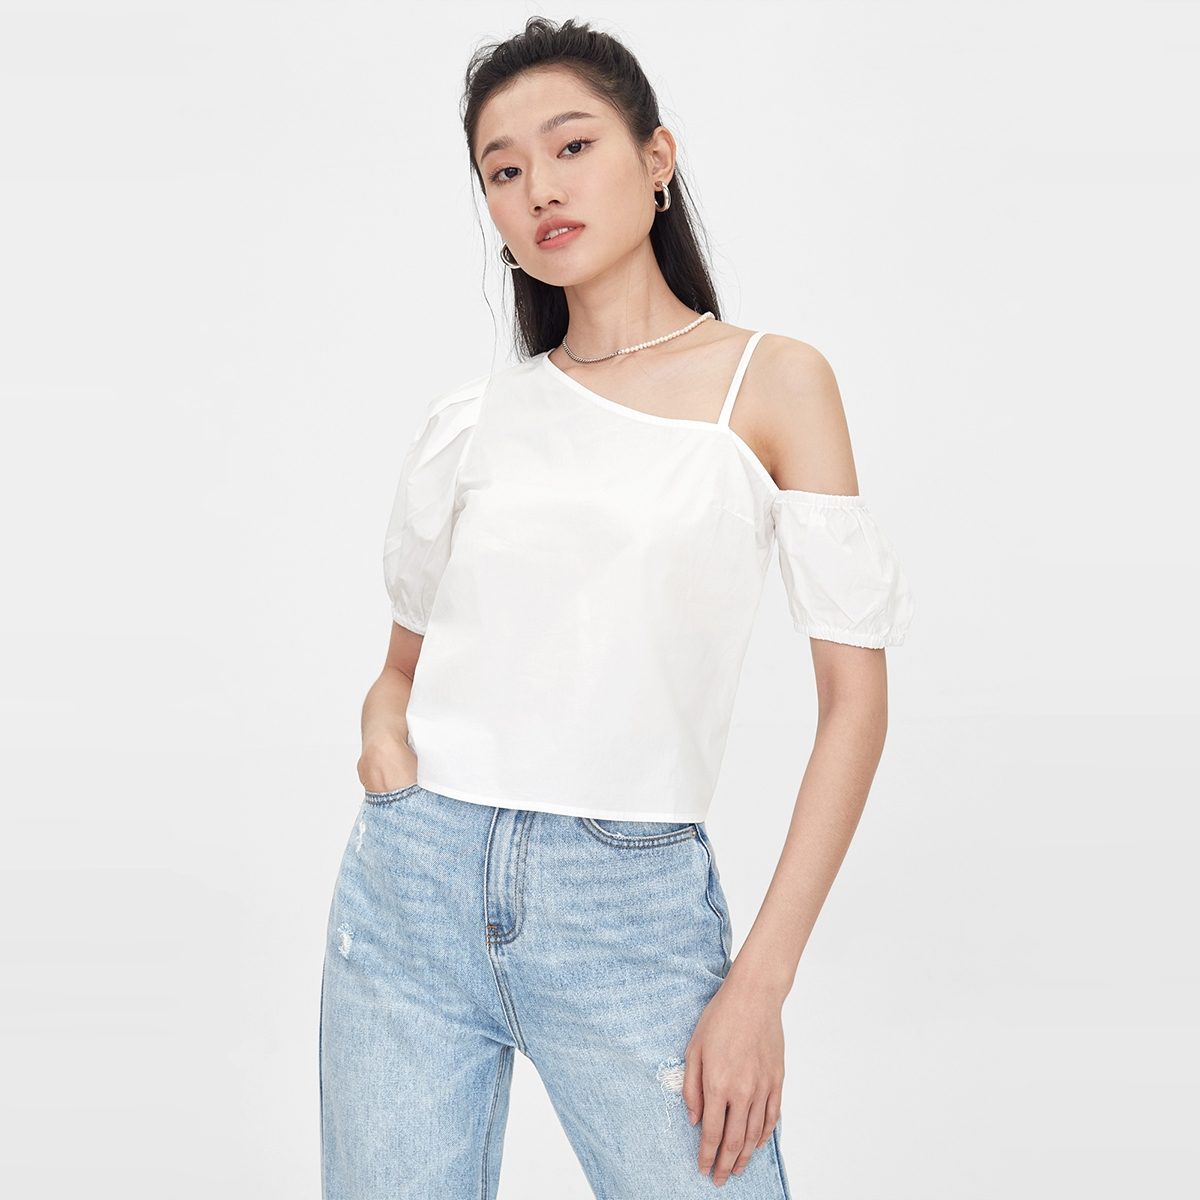 One Shoulder Strap Puffed Sleeves Top White